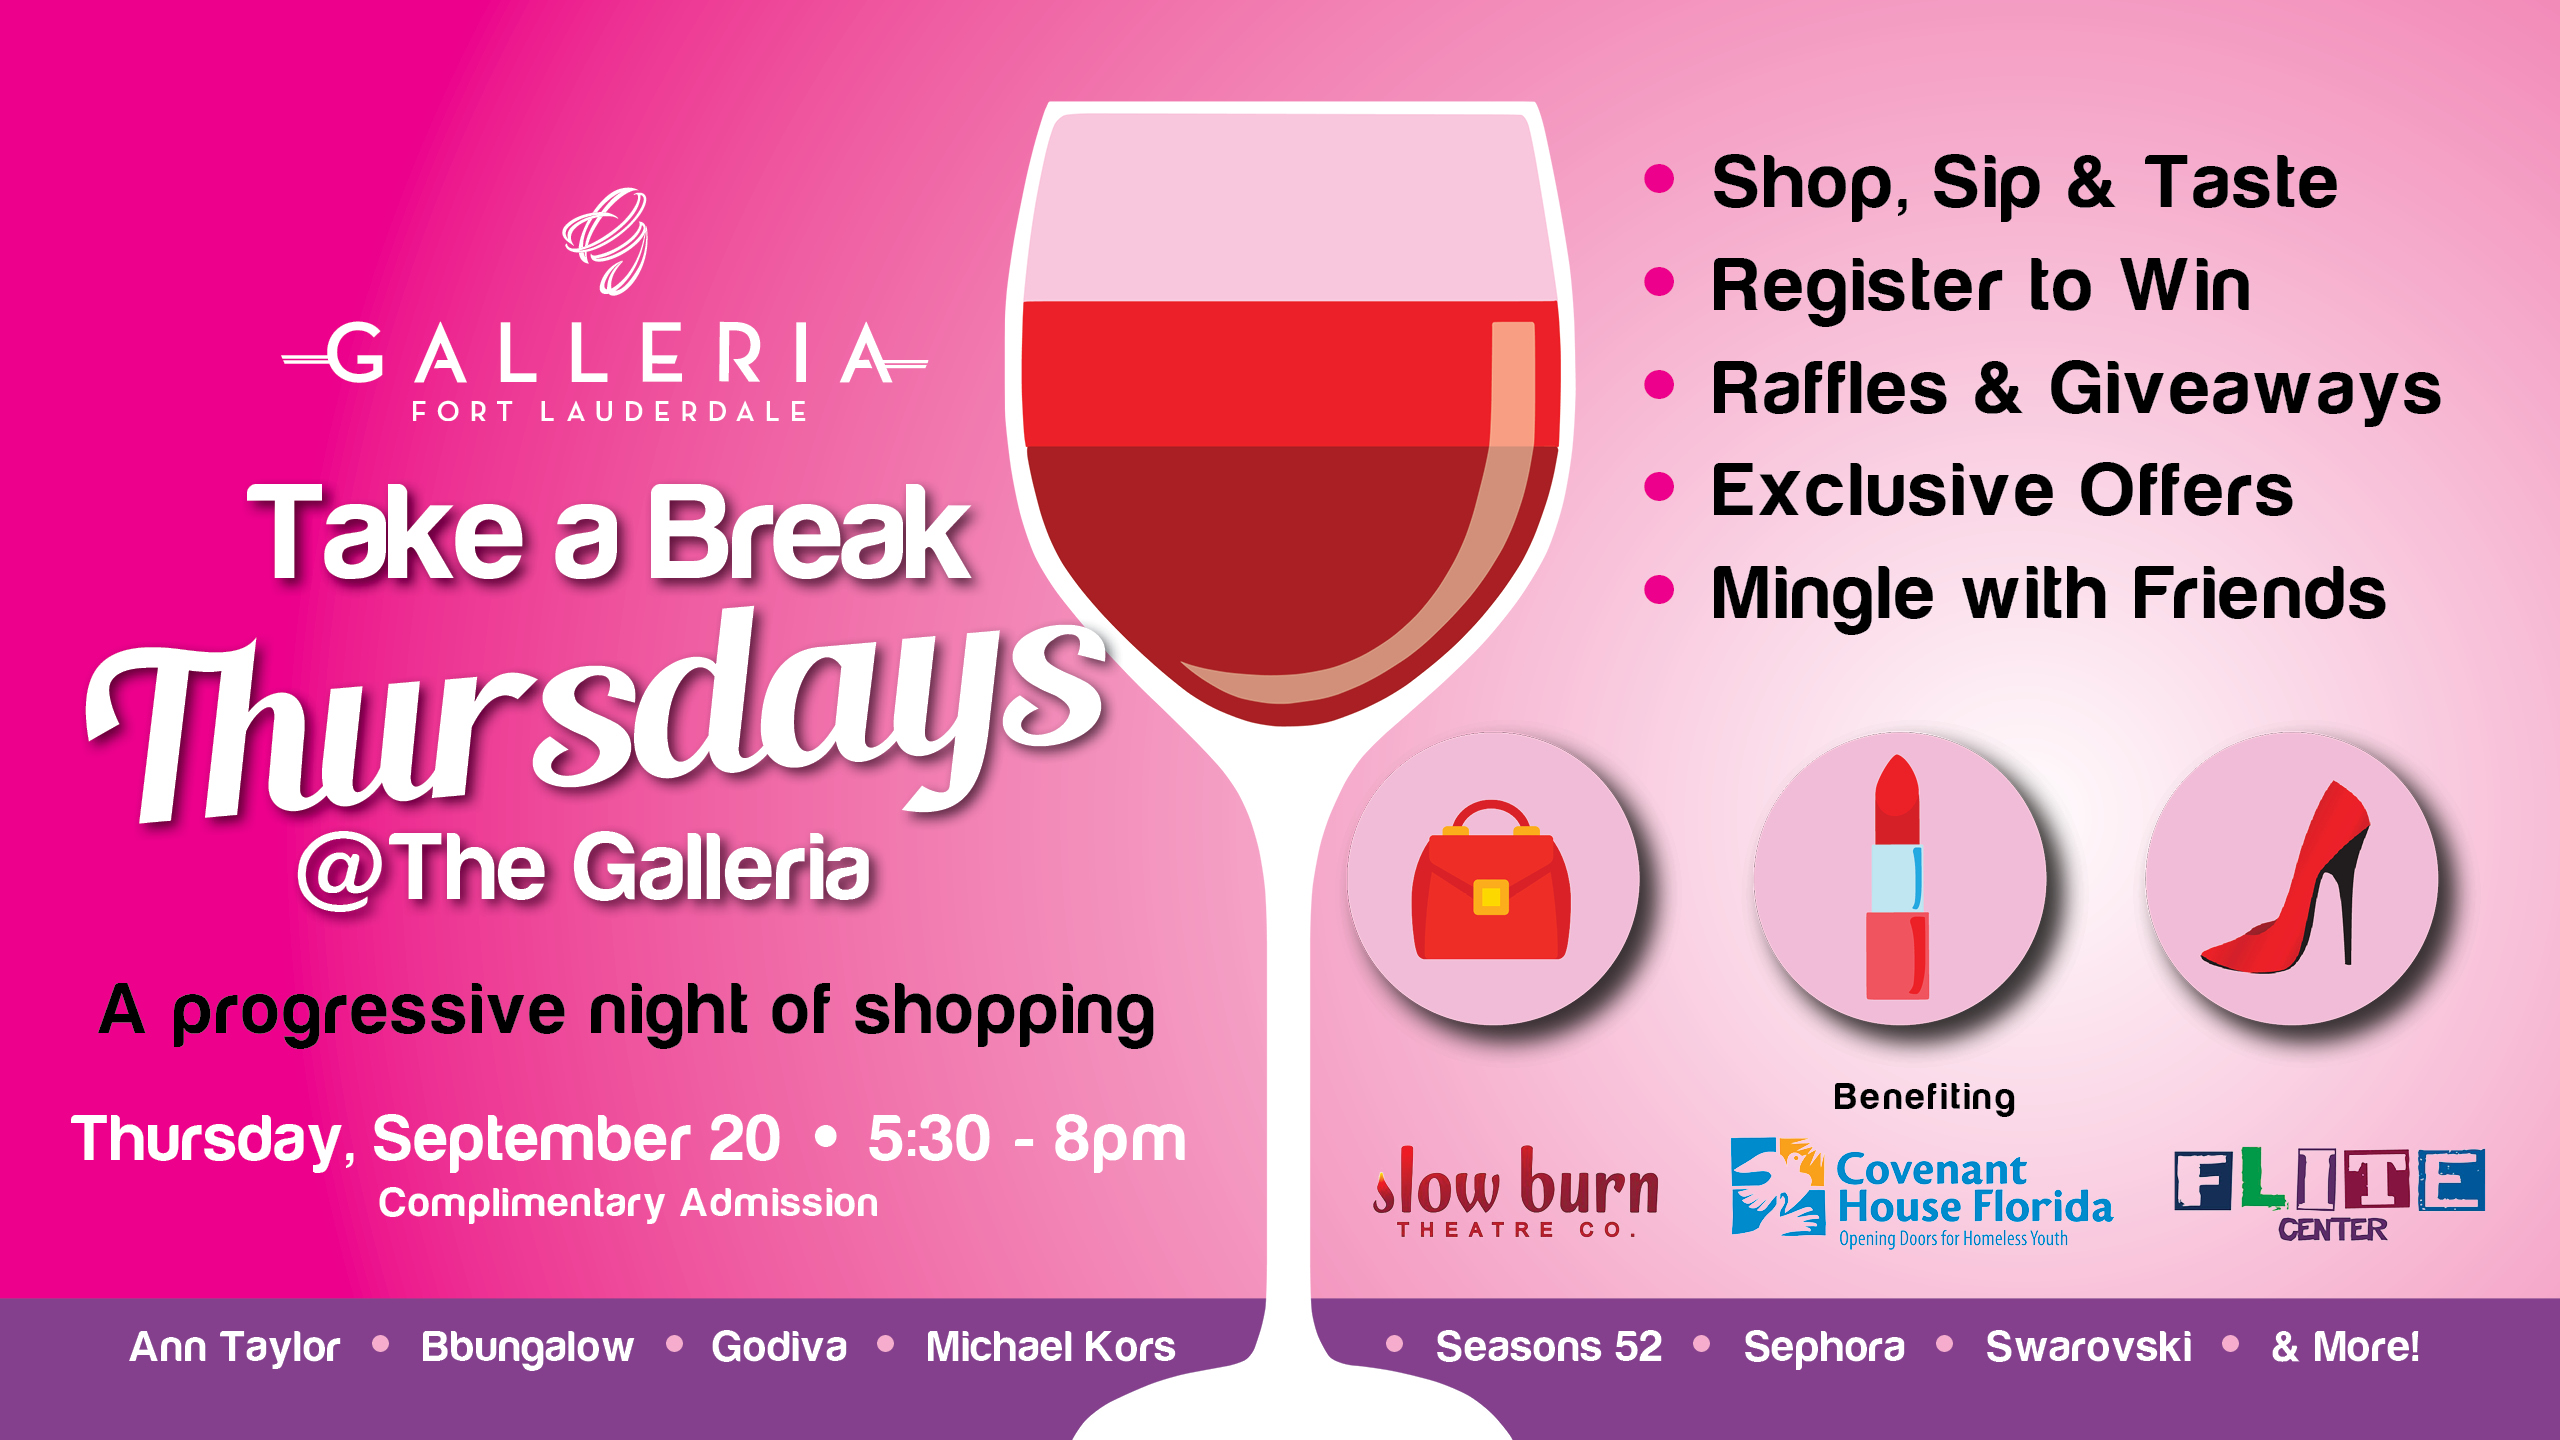 Take A Break Thursdays Shopping Benefit At The Galleria At Fort